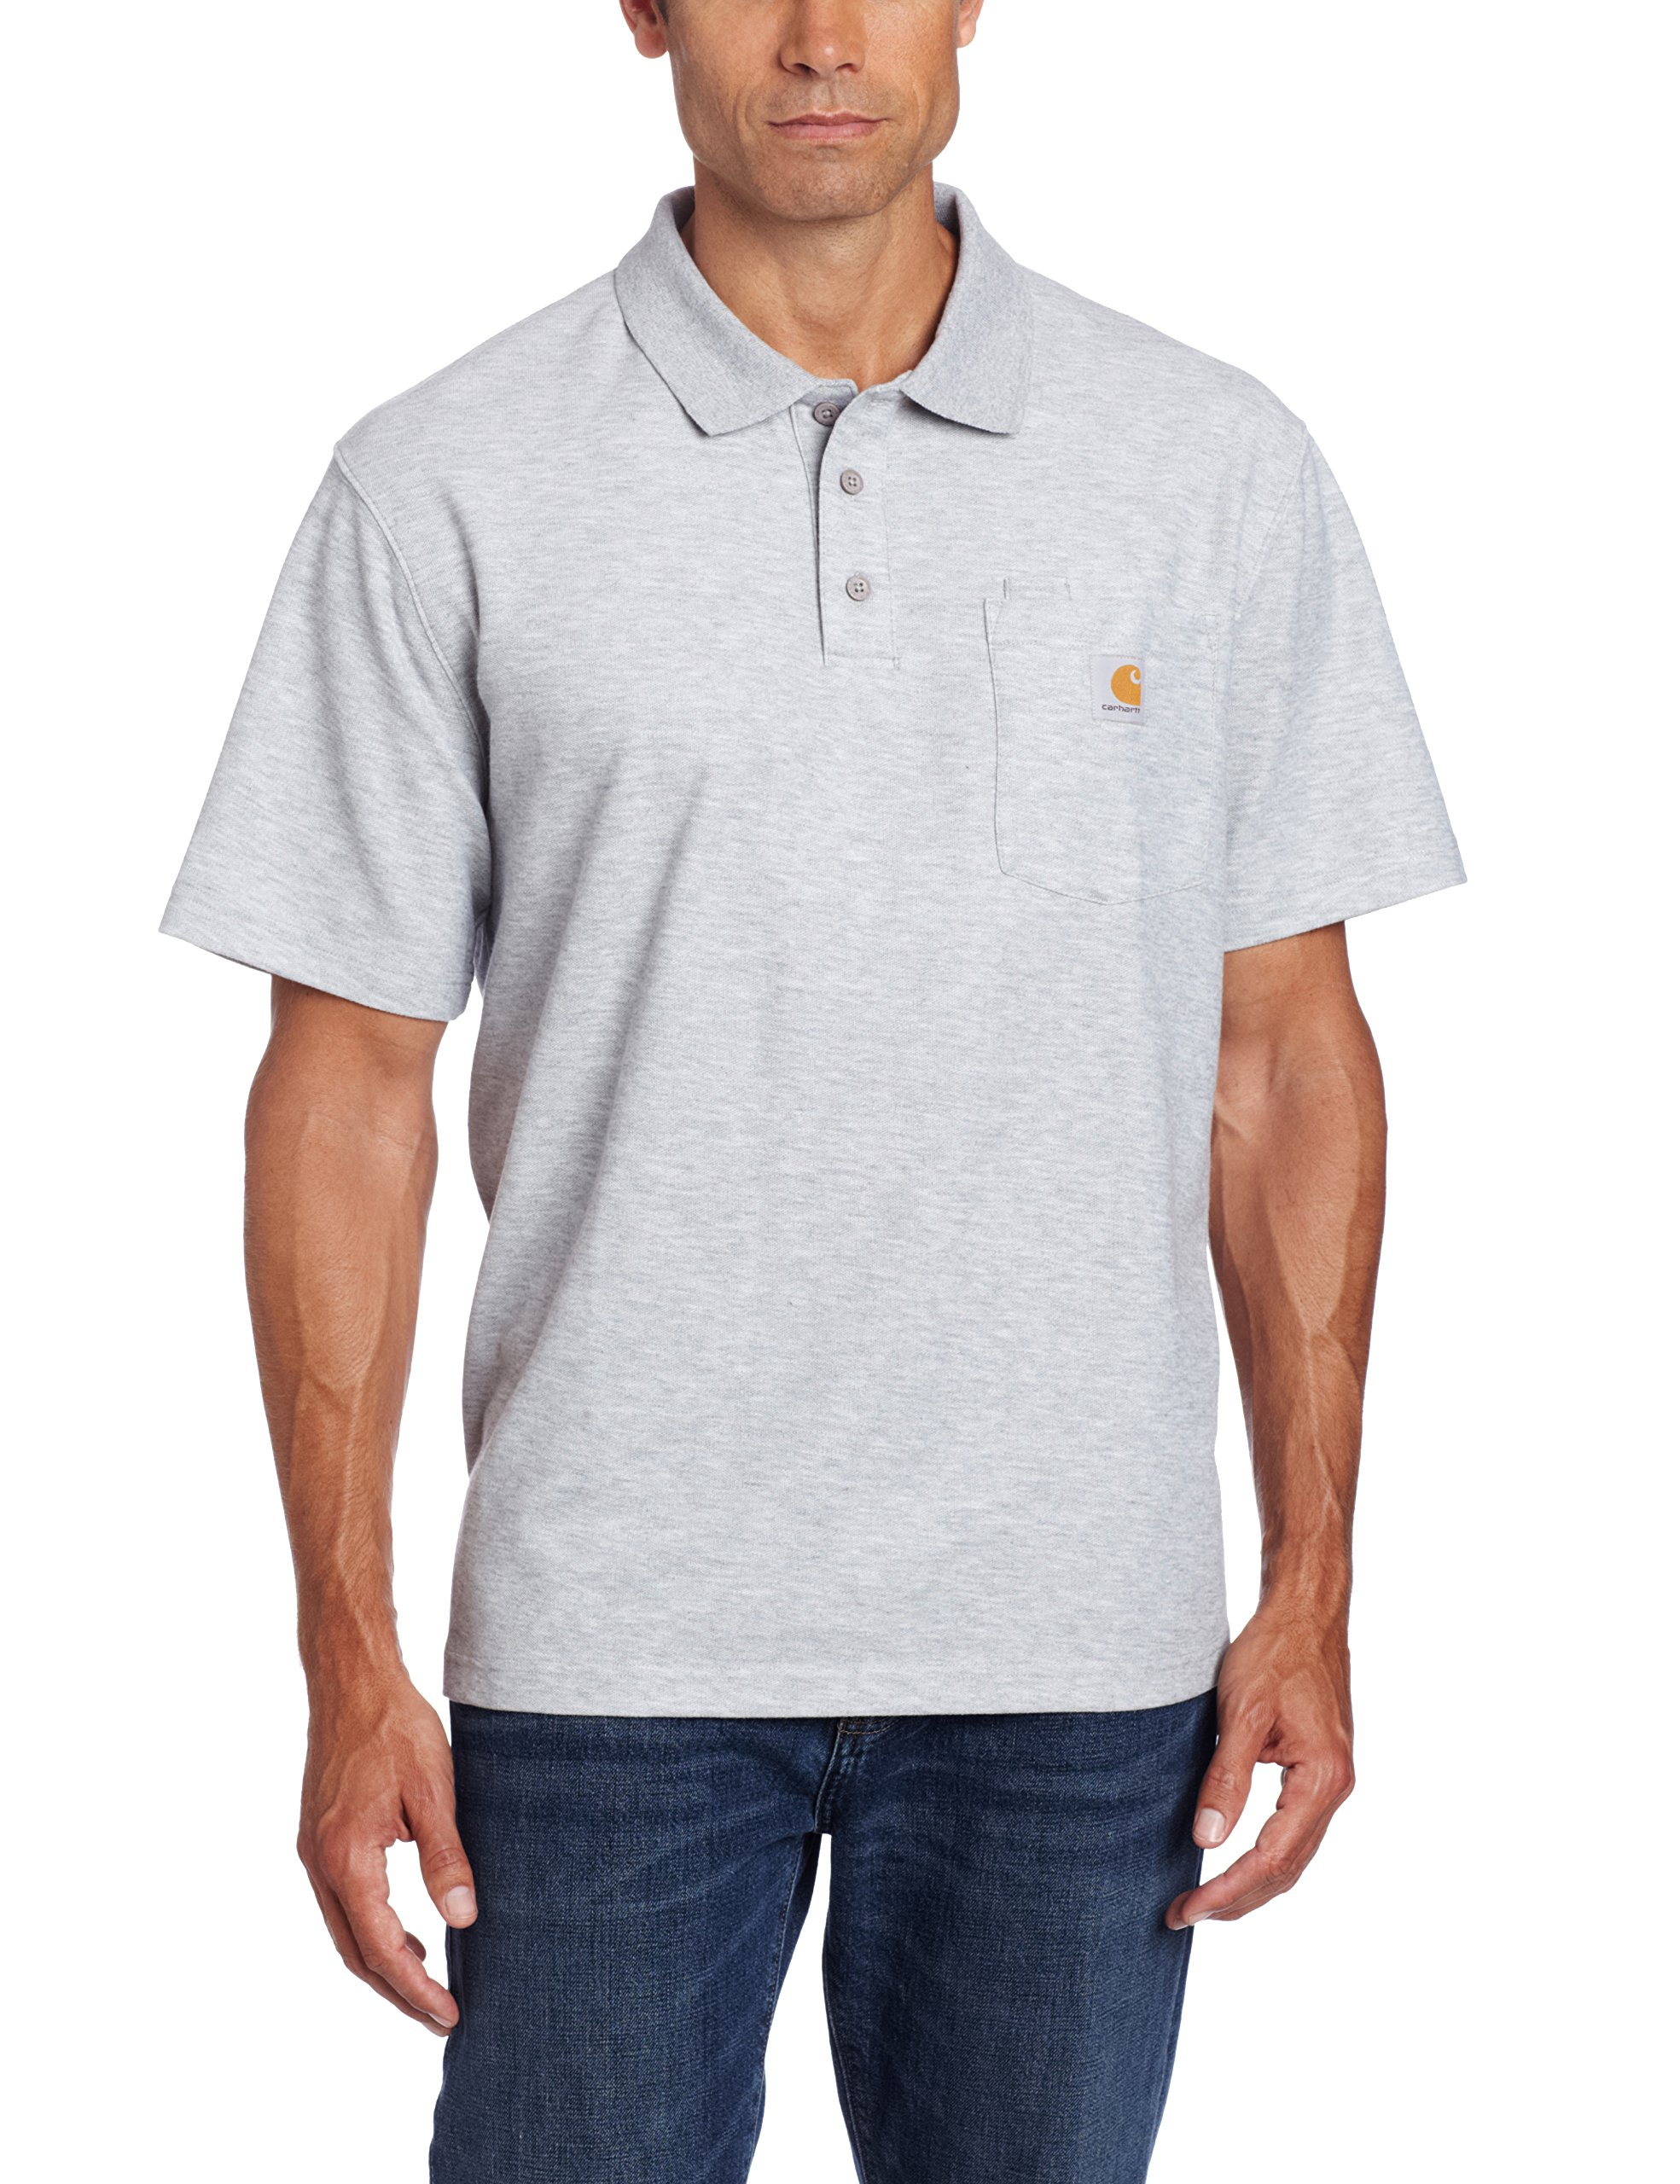 682a75c14 Best Rated in Men s Polo Shirts   Helpful Customer Reviews - Amazon.com